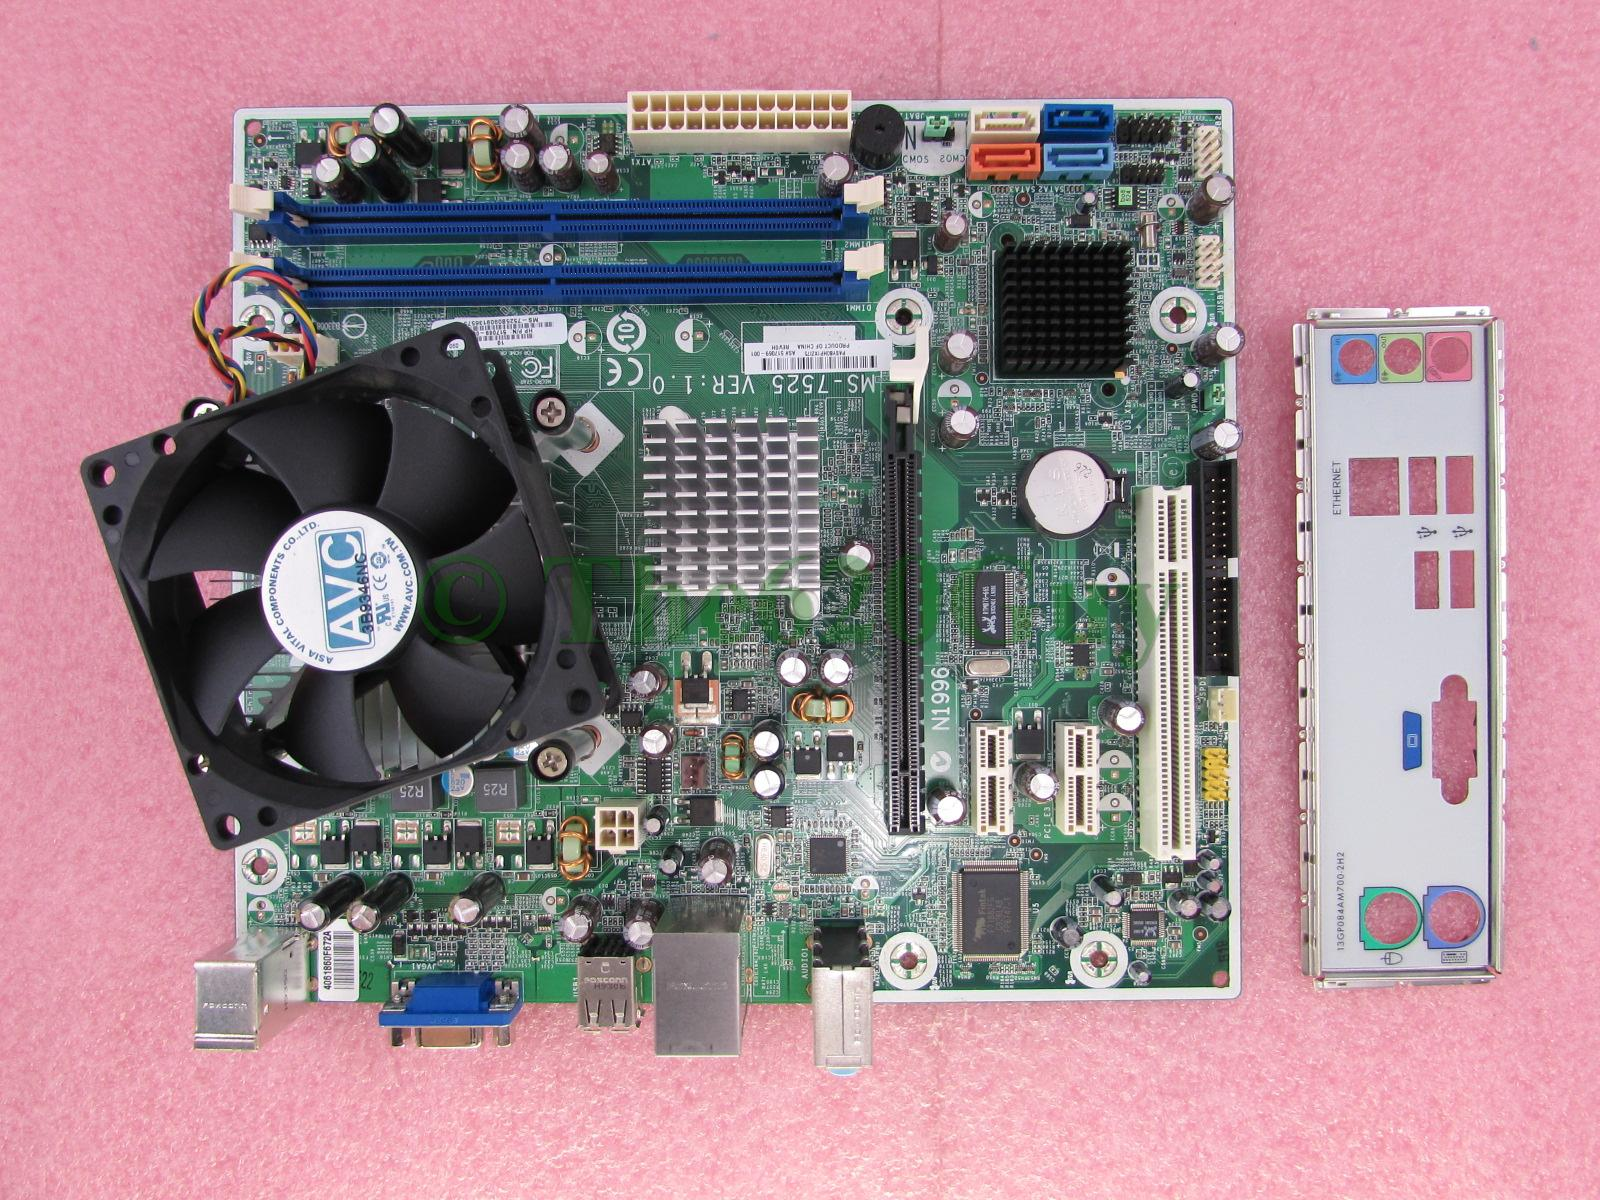 Download Driver Mainboard Hp Ms-7525 - naughtynormalhorse's blog